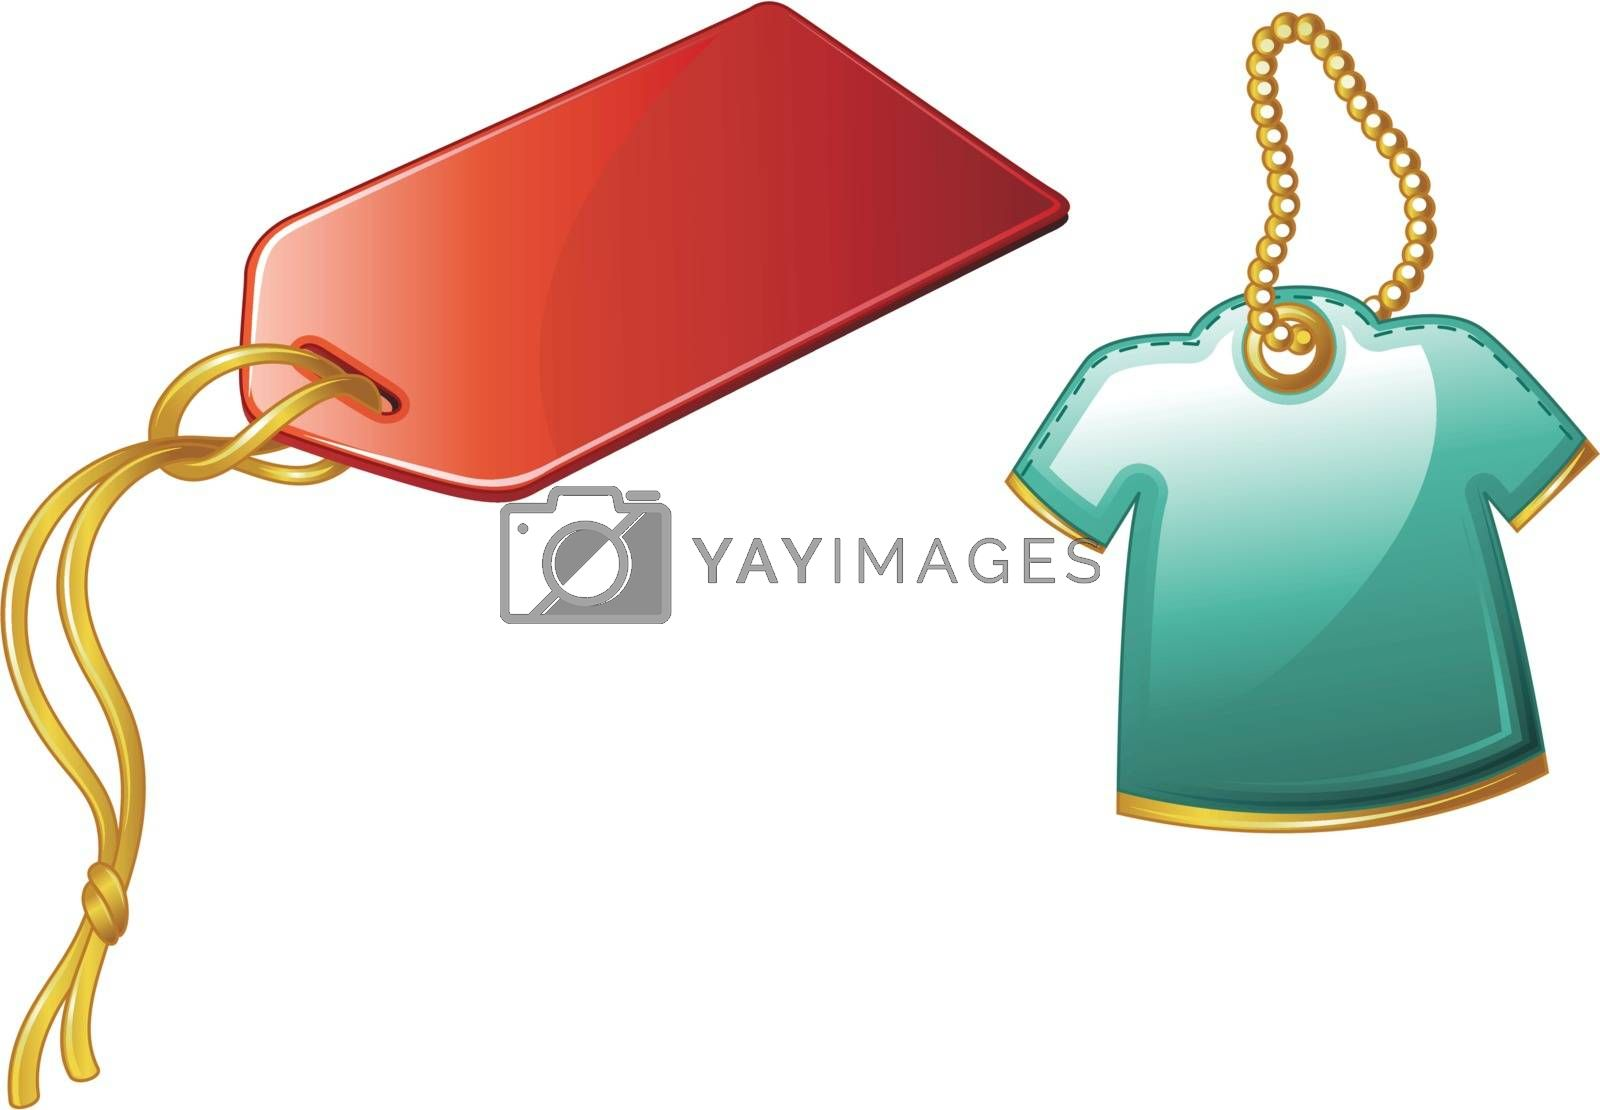 Illustration of price tags on white